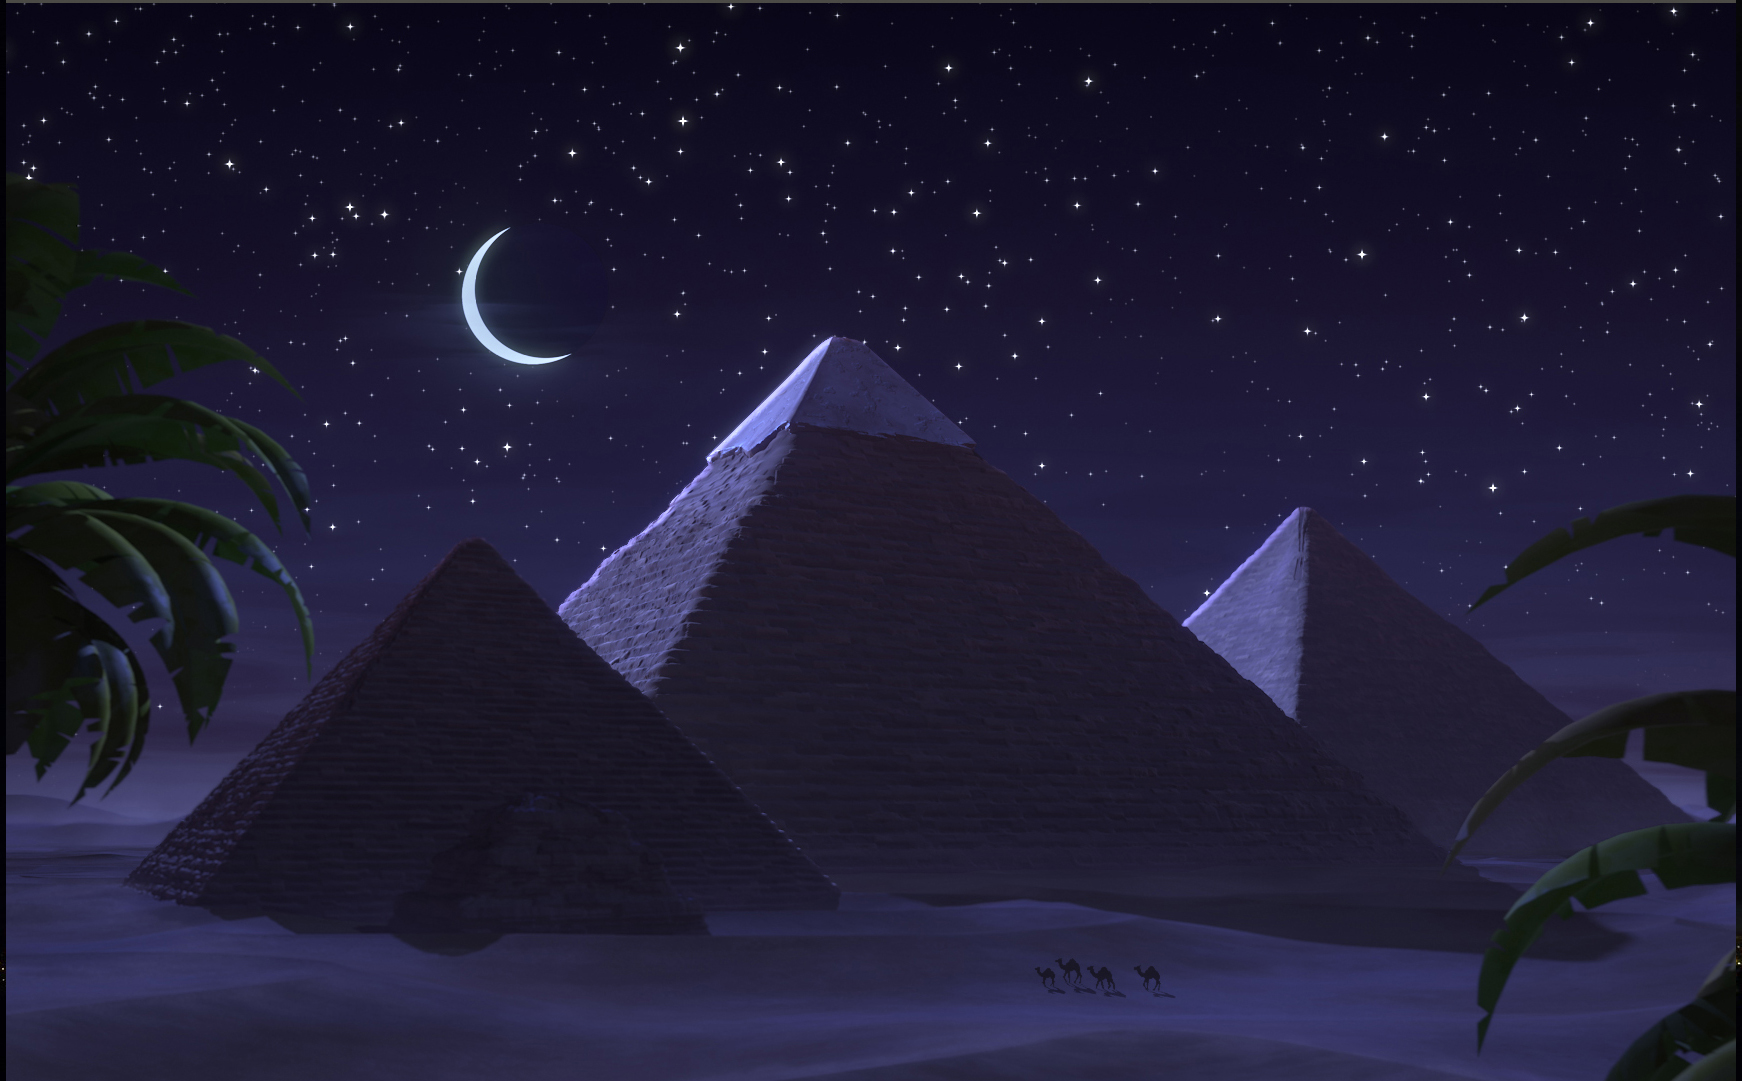 An animated image of the Giza Pyramids at night, from the movie 'Tomb Racer'